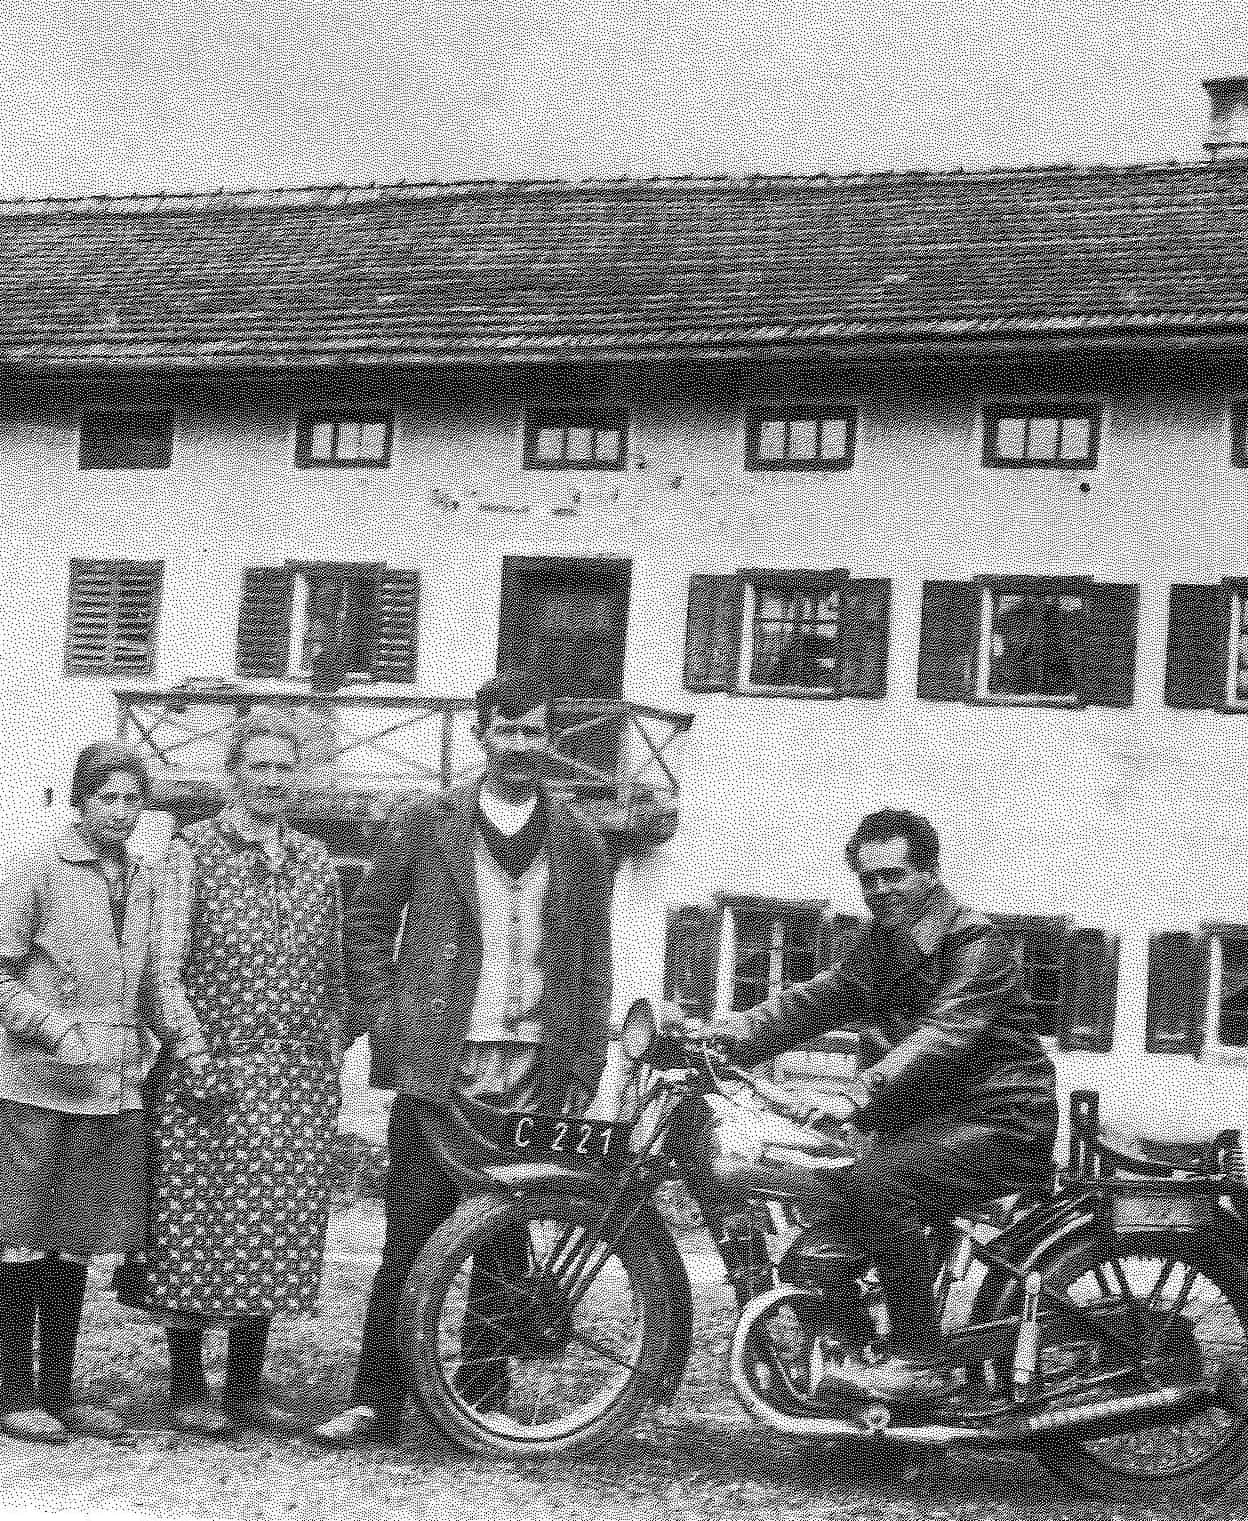 Franz Jagerstatter poses on his motorcycle. From right to left: Franz Jagerstatter; his stepfather, Heinrich Jagerstatter; his mother, Rosalia Jagerstatter; and Aloisia Sommerauer, Franz's cousin and foster sister. / Styria Verlag. Used with permission.